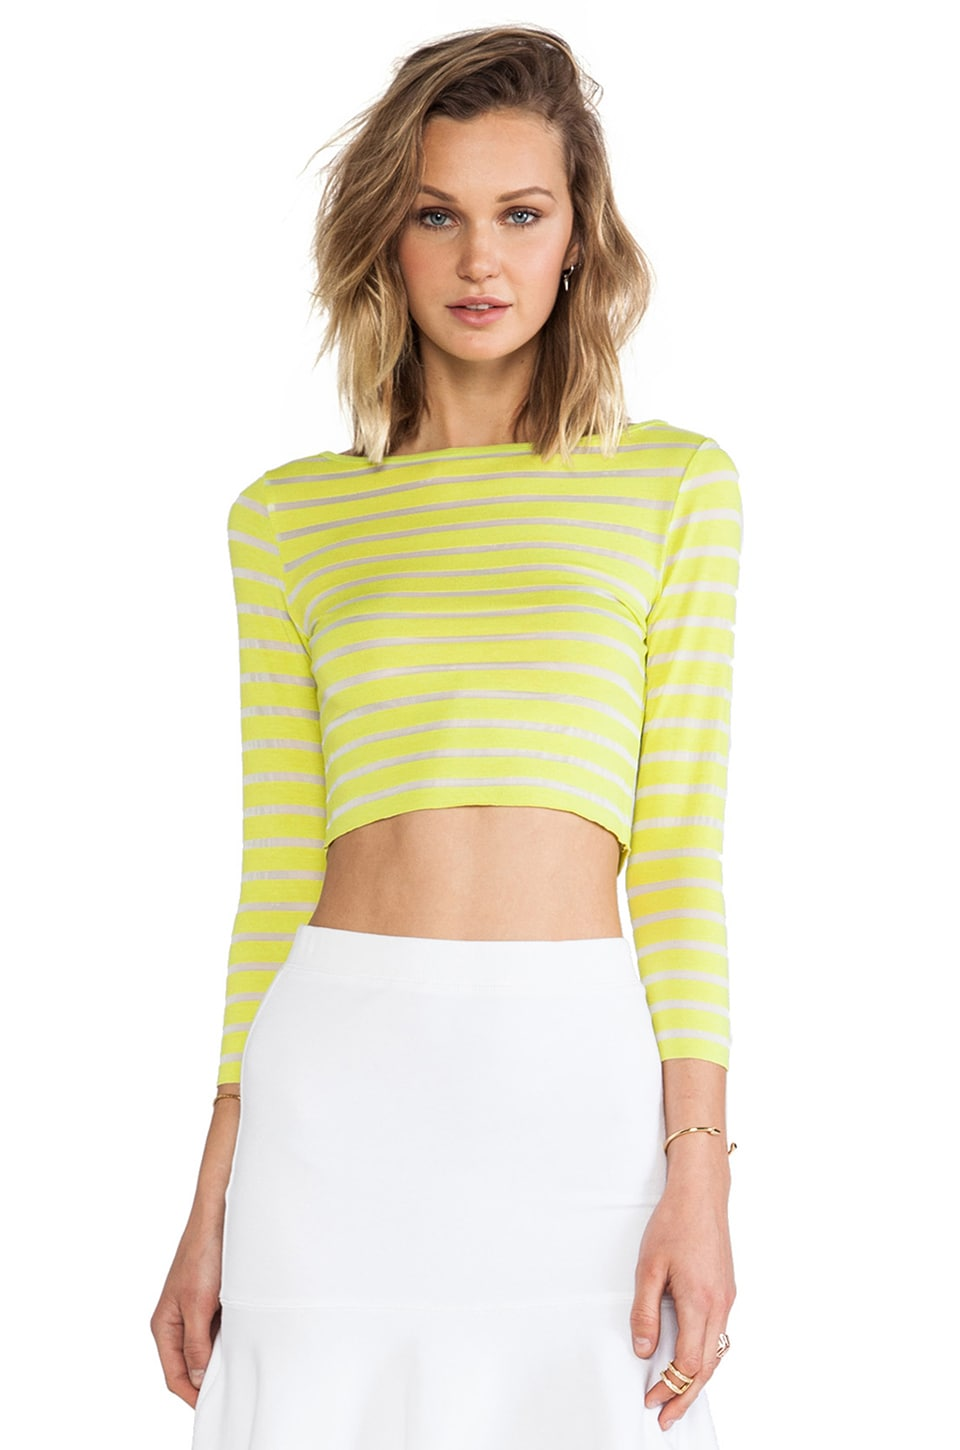 Bailey 44 Tropical Bliss Top in Chartreuse